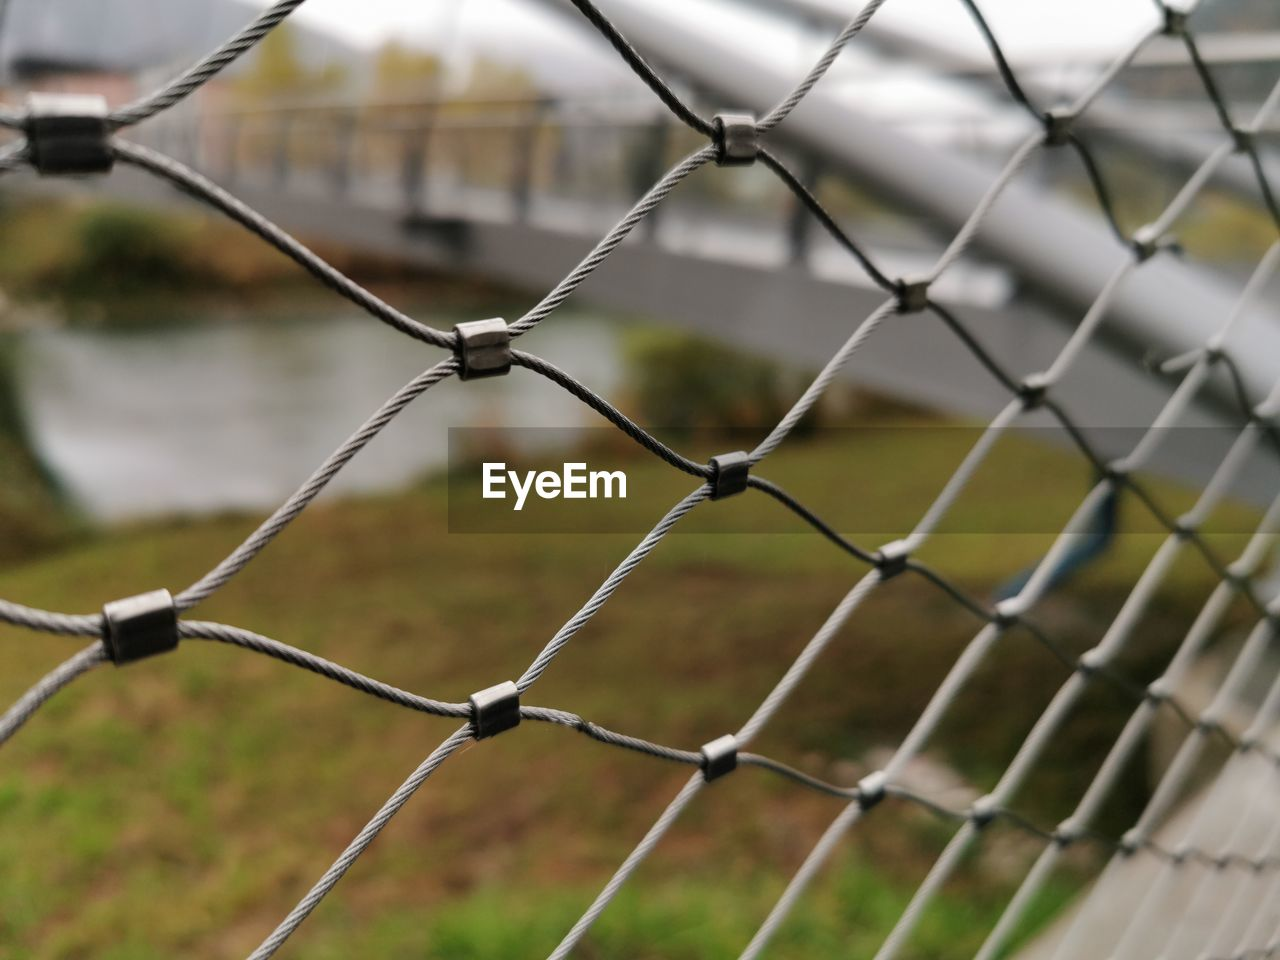 fence, focus on foreground, barrier, security, protection, boundary, safety, chainlink fence, day, pattern, full frame, metal, close-up, no people, nature, backgrounds, outdoors, sport, field, selective focus